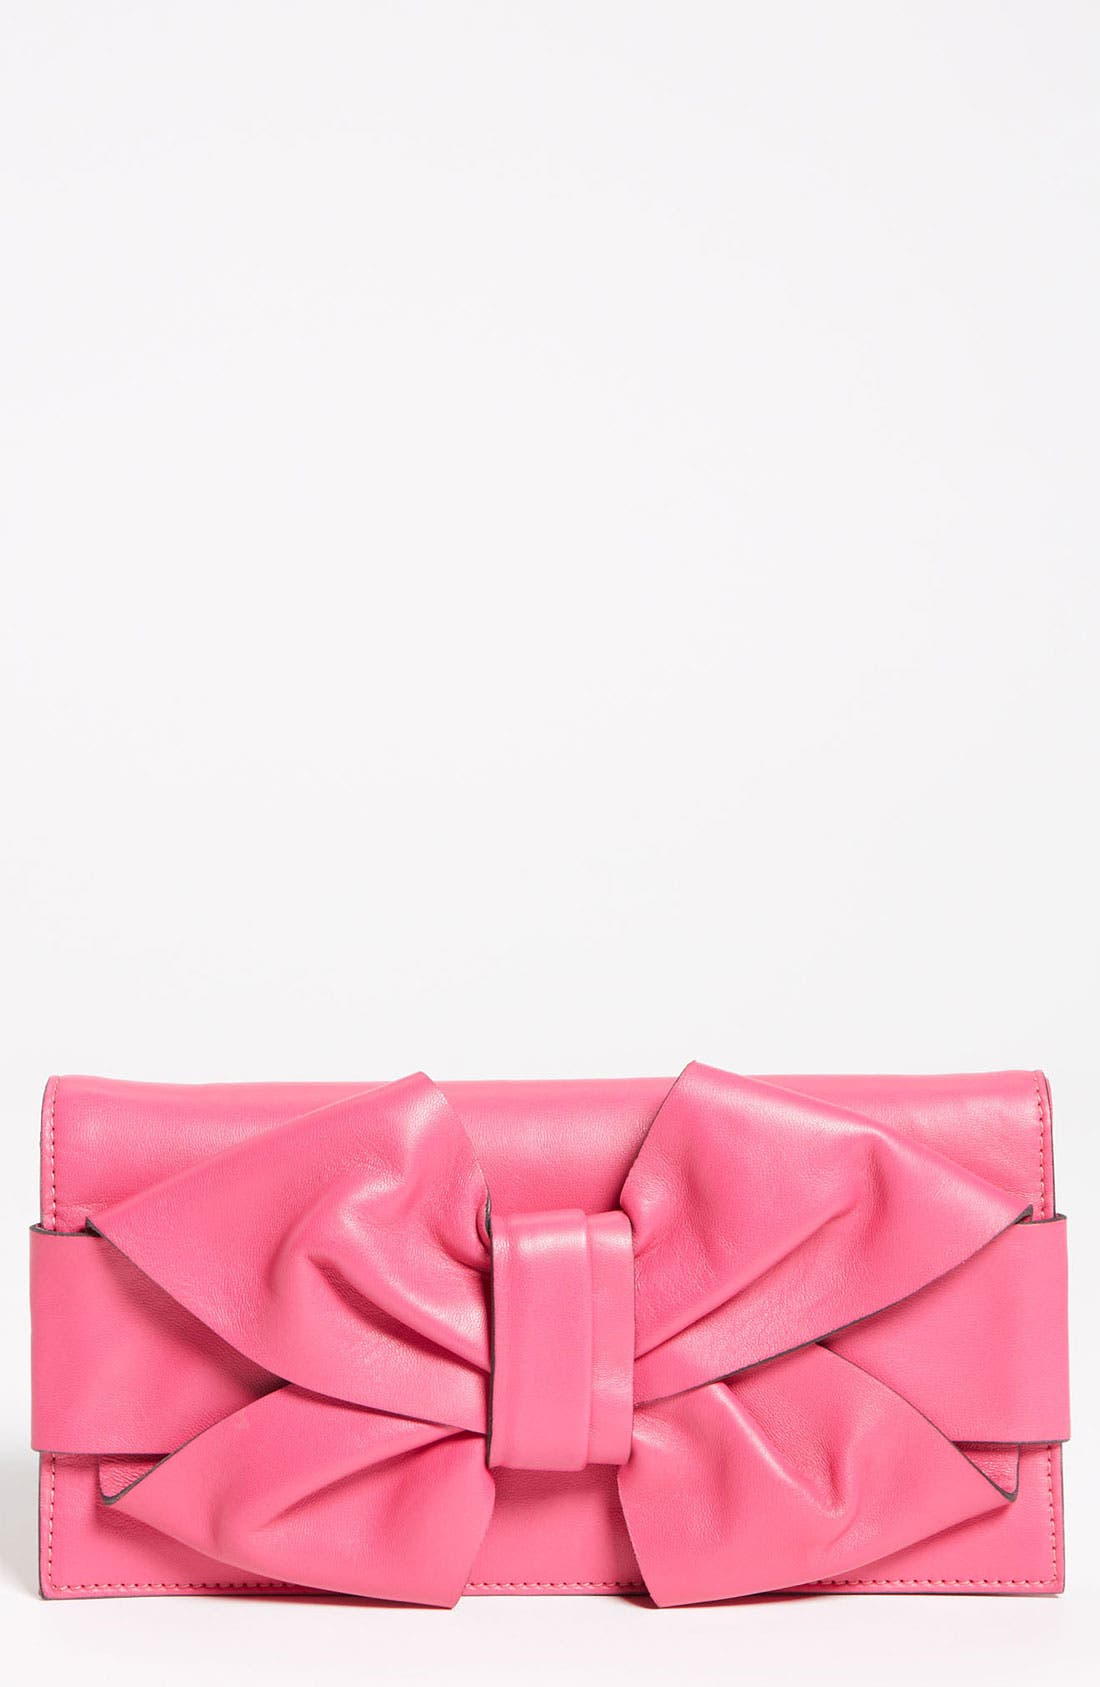 Main Image - Valentino 'Bow' Leather Clutch